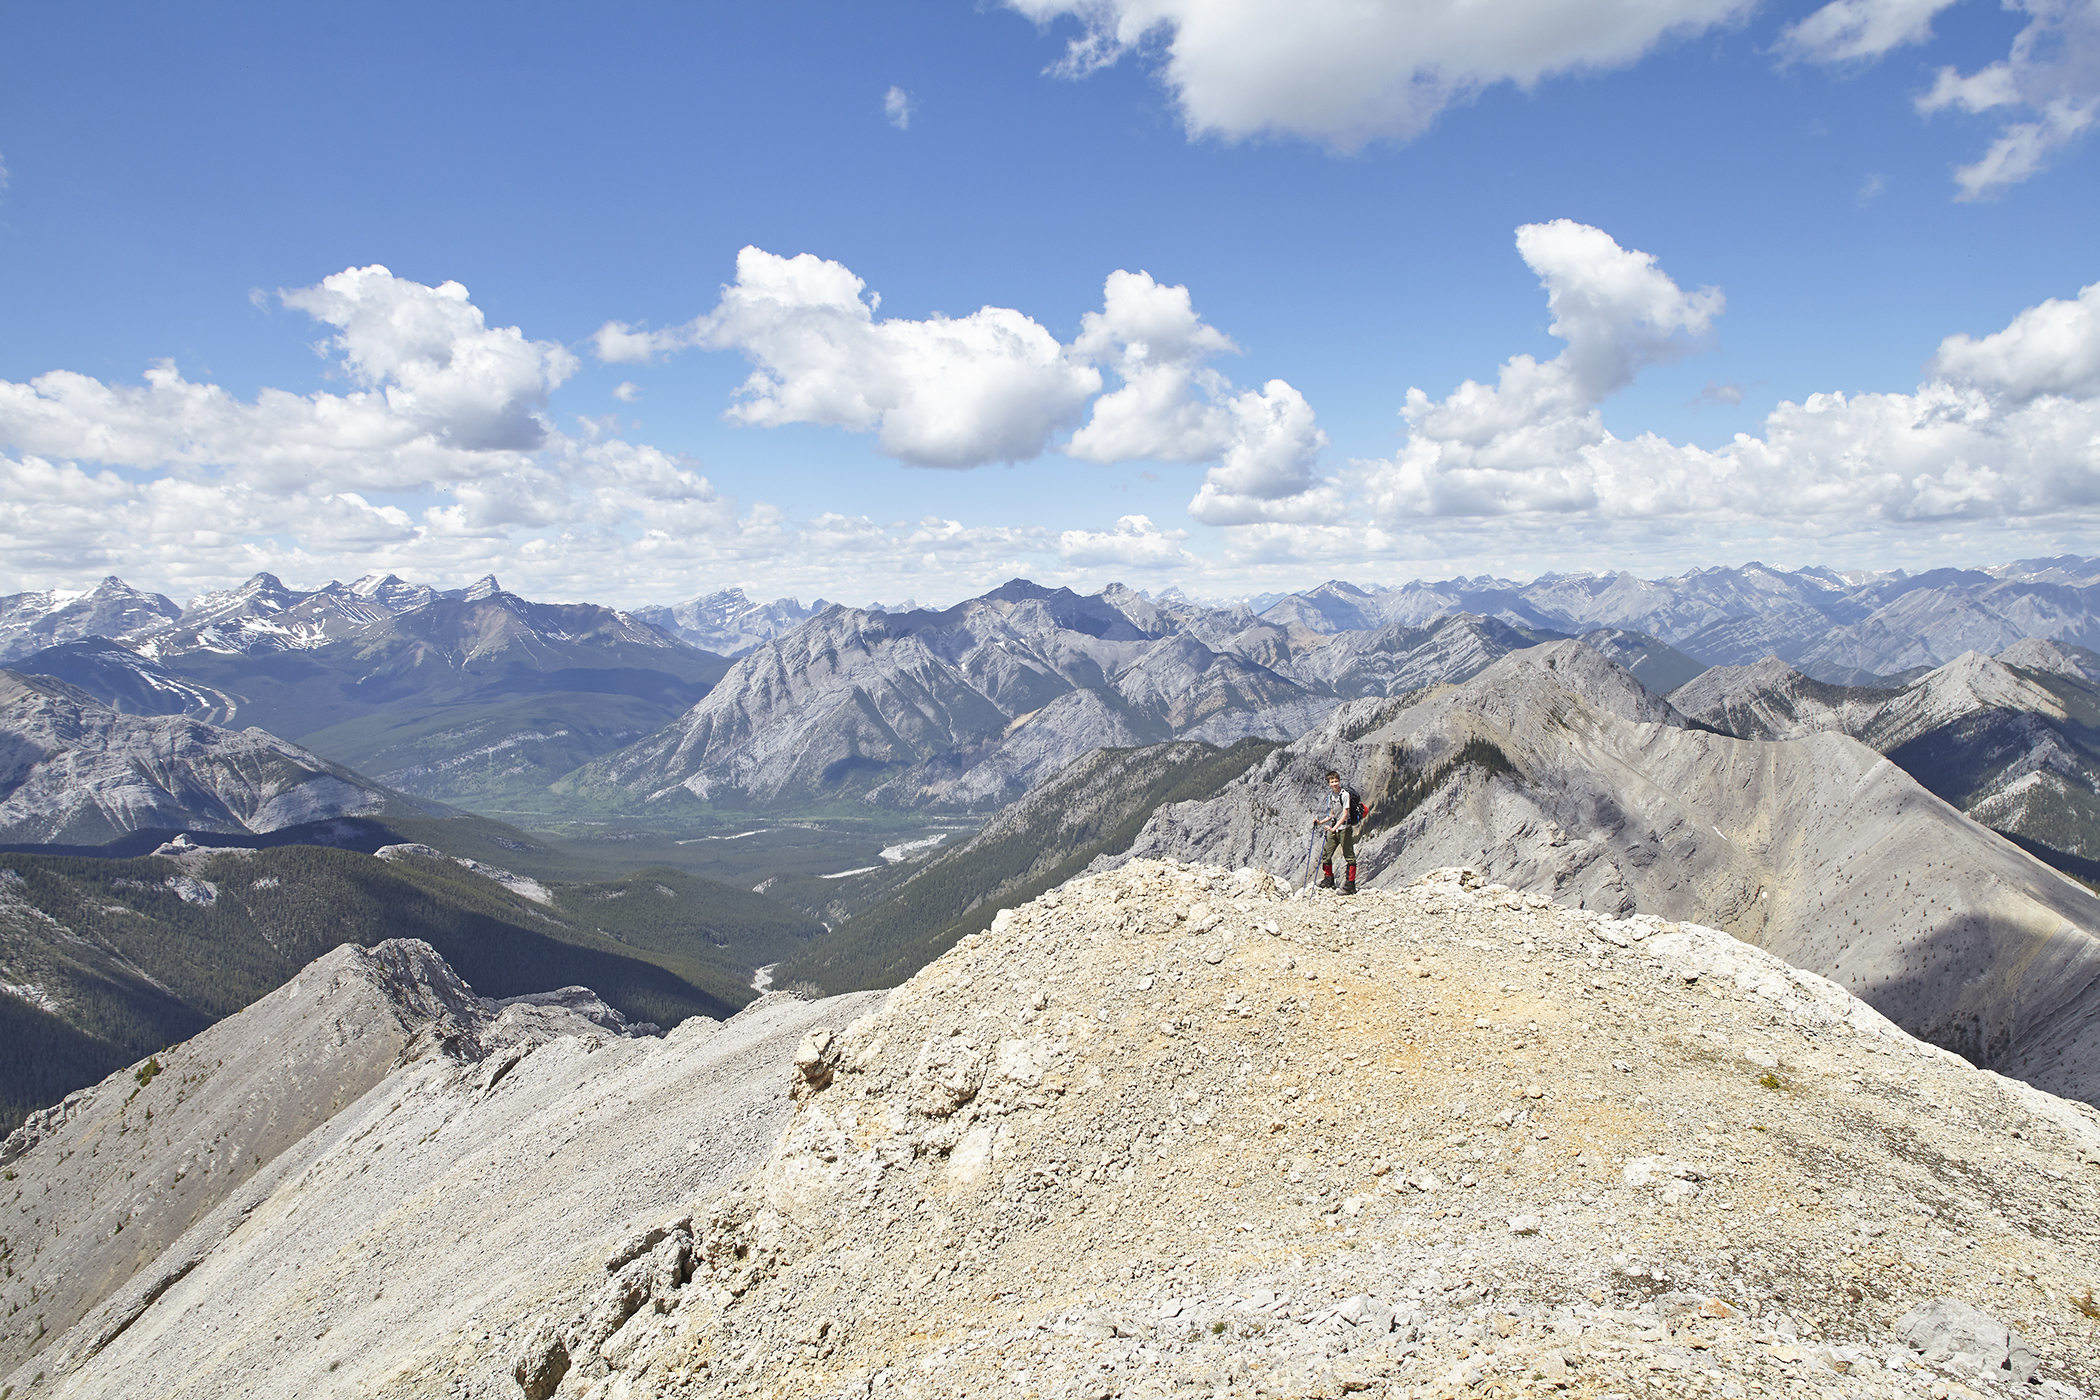 The view towards Midday Peak and the Kananaskis Valley